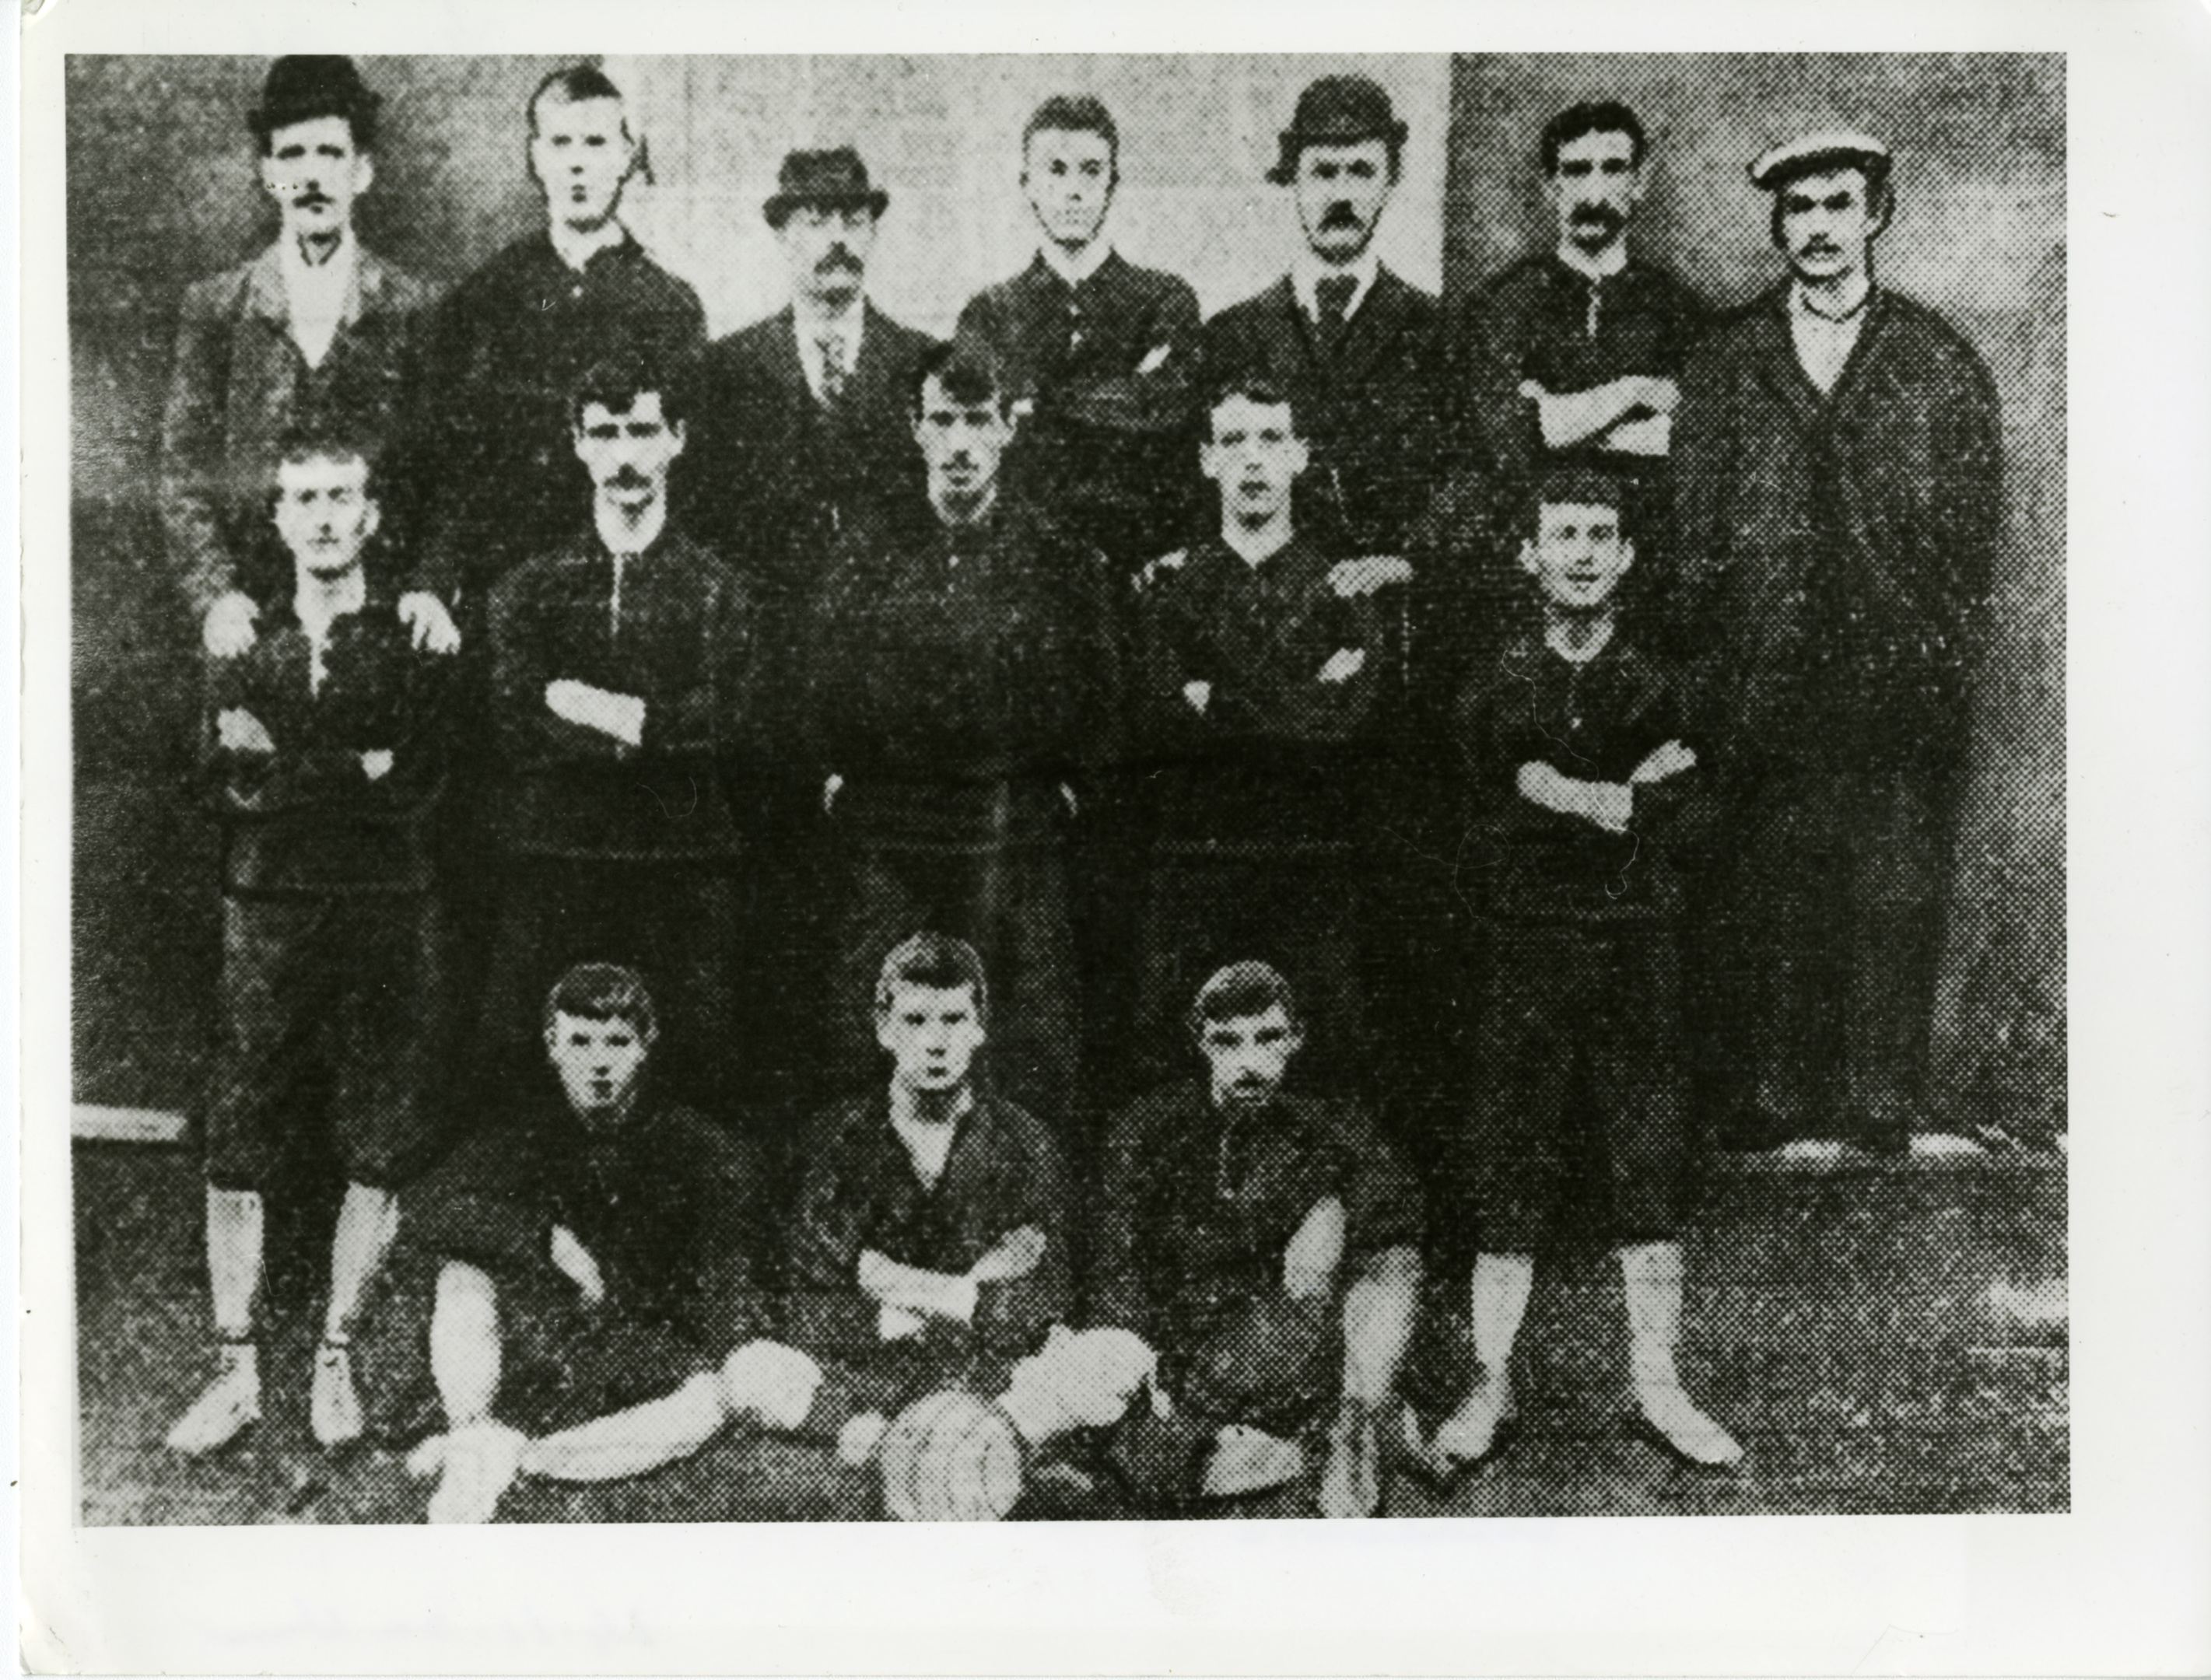 "Arborath FC 1885-09- The record breaking Arbroath Football Club team sitting behind the ball is John ""Jockey"" Petrie who scored 13 goals from the outside right position at the Scottish Cup match against Bon Accord on 12 September 1885."